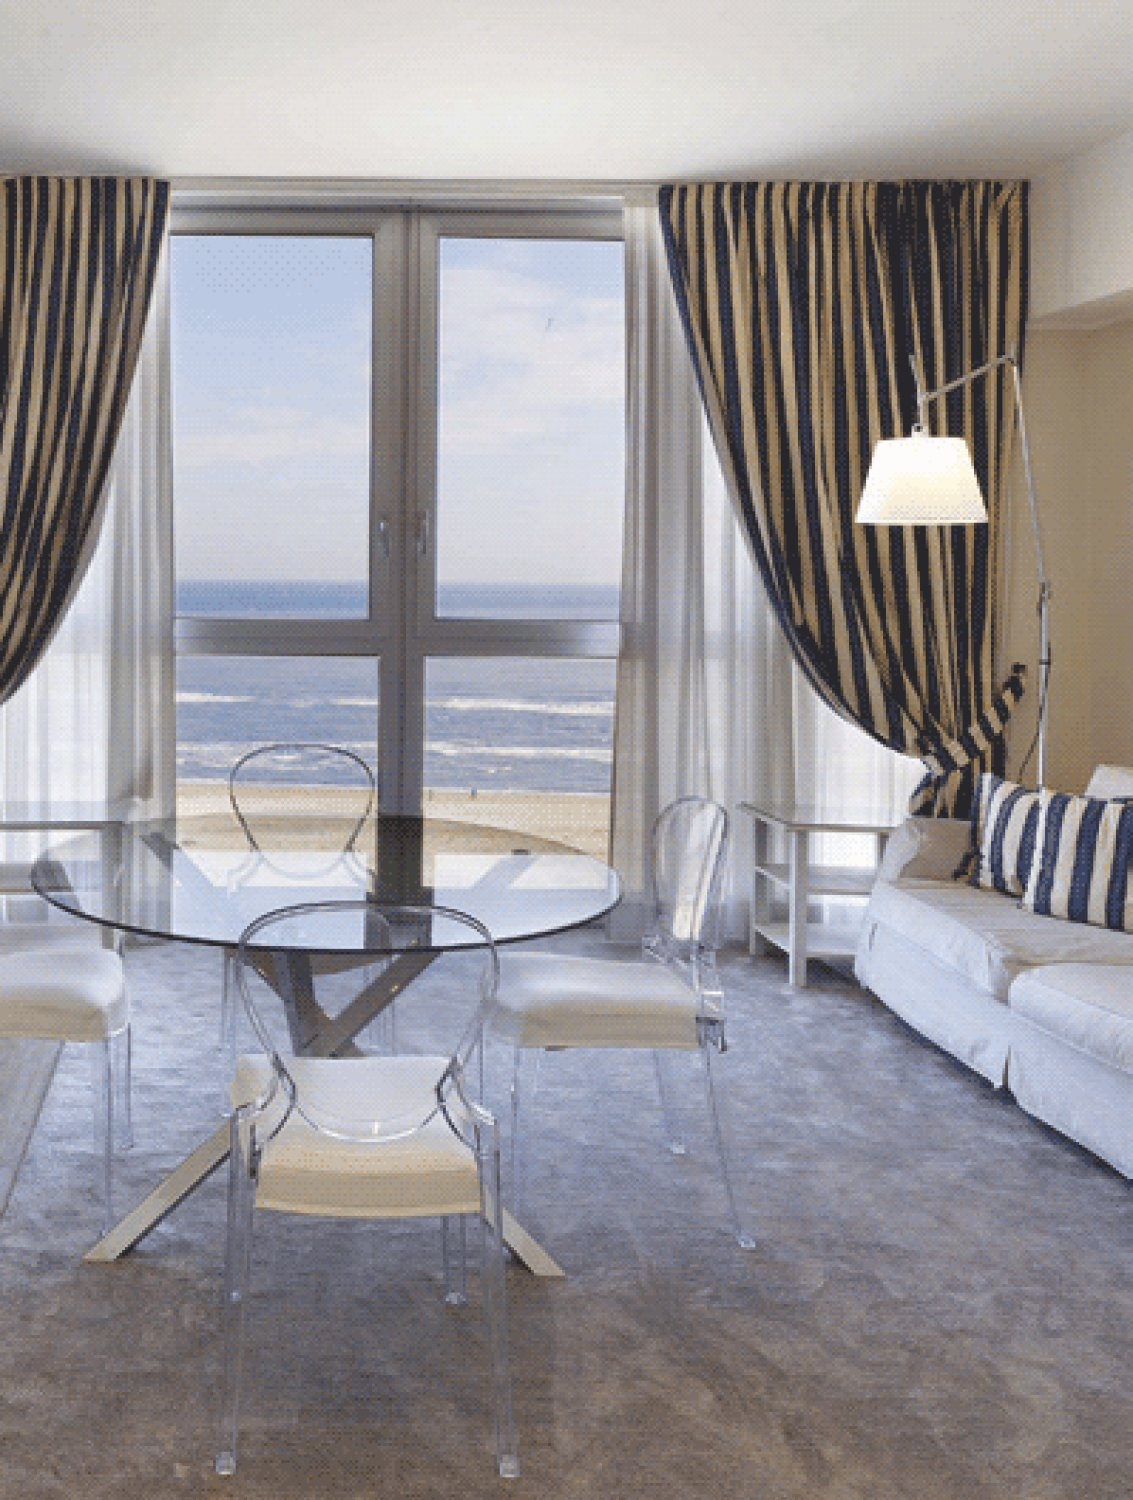 Residence lungomare riccione hotels chalet partners - Residence riccione con piscina ...